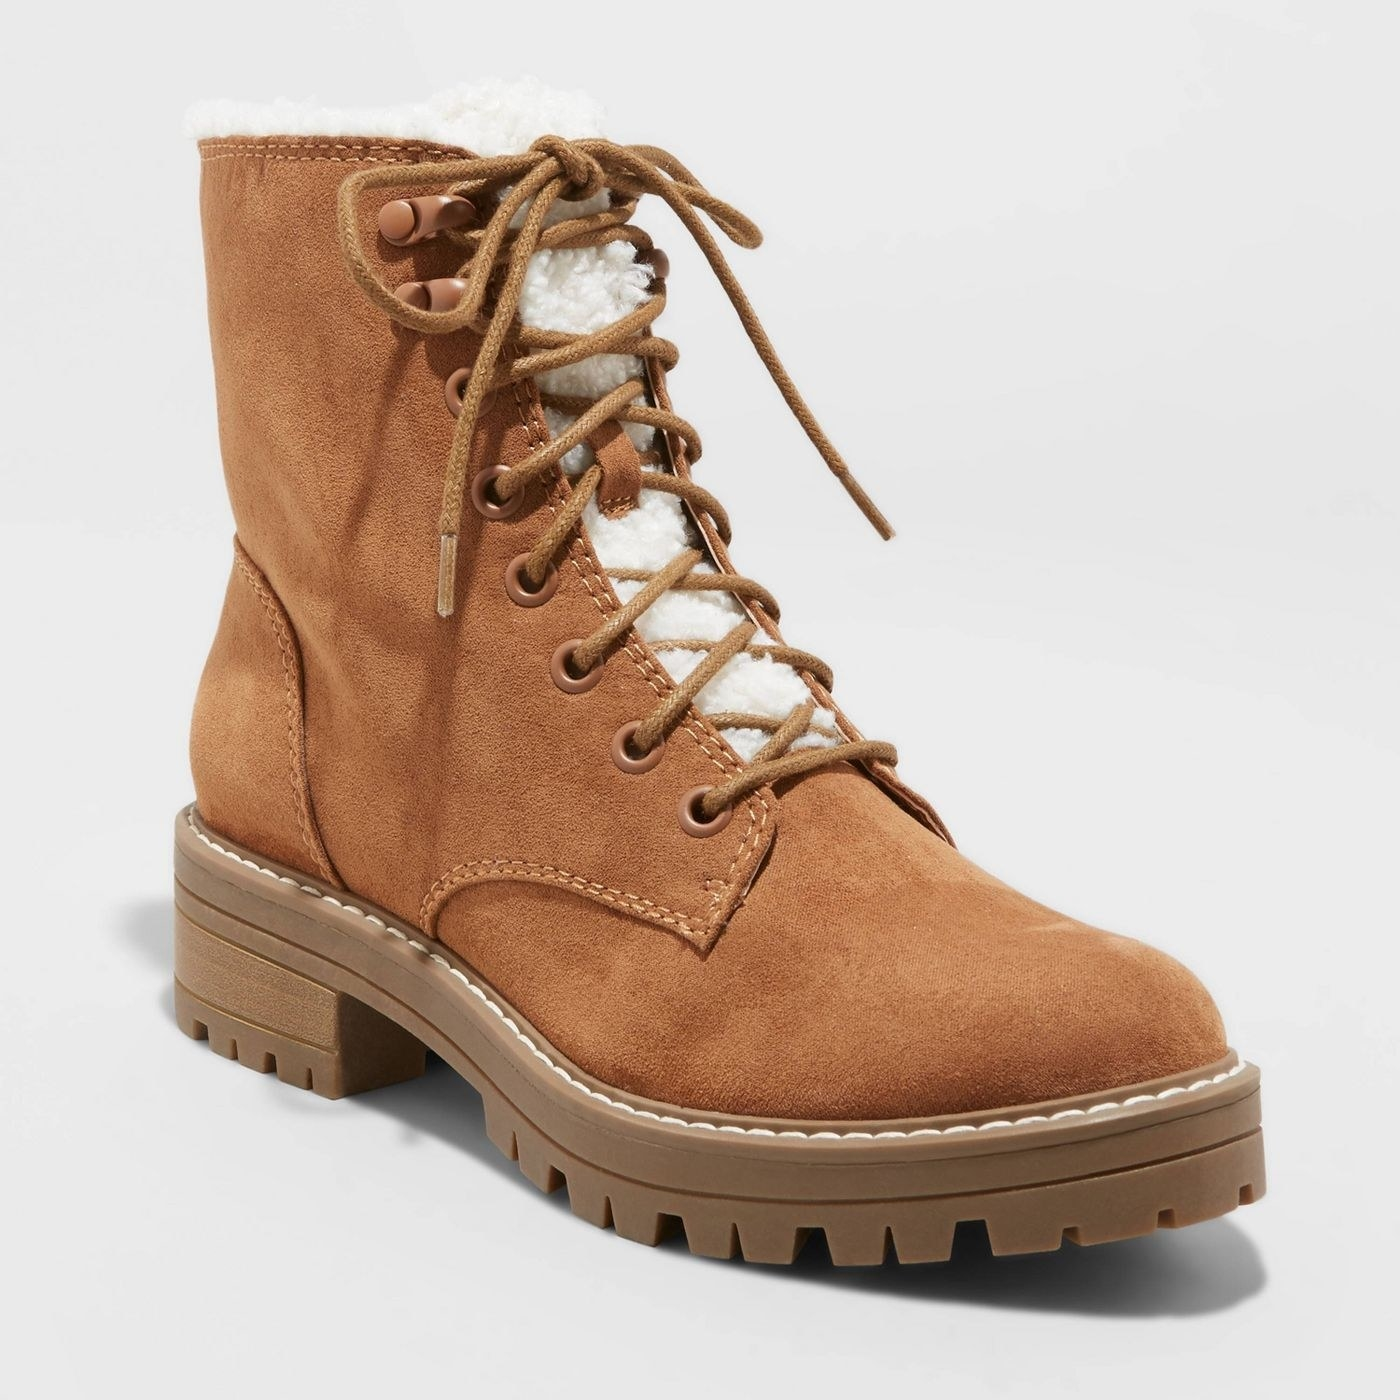 tan laceup hiking booties with a shearling lined tongue